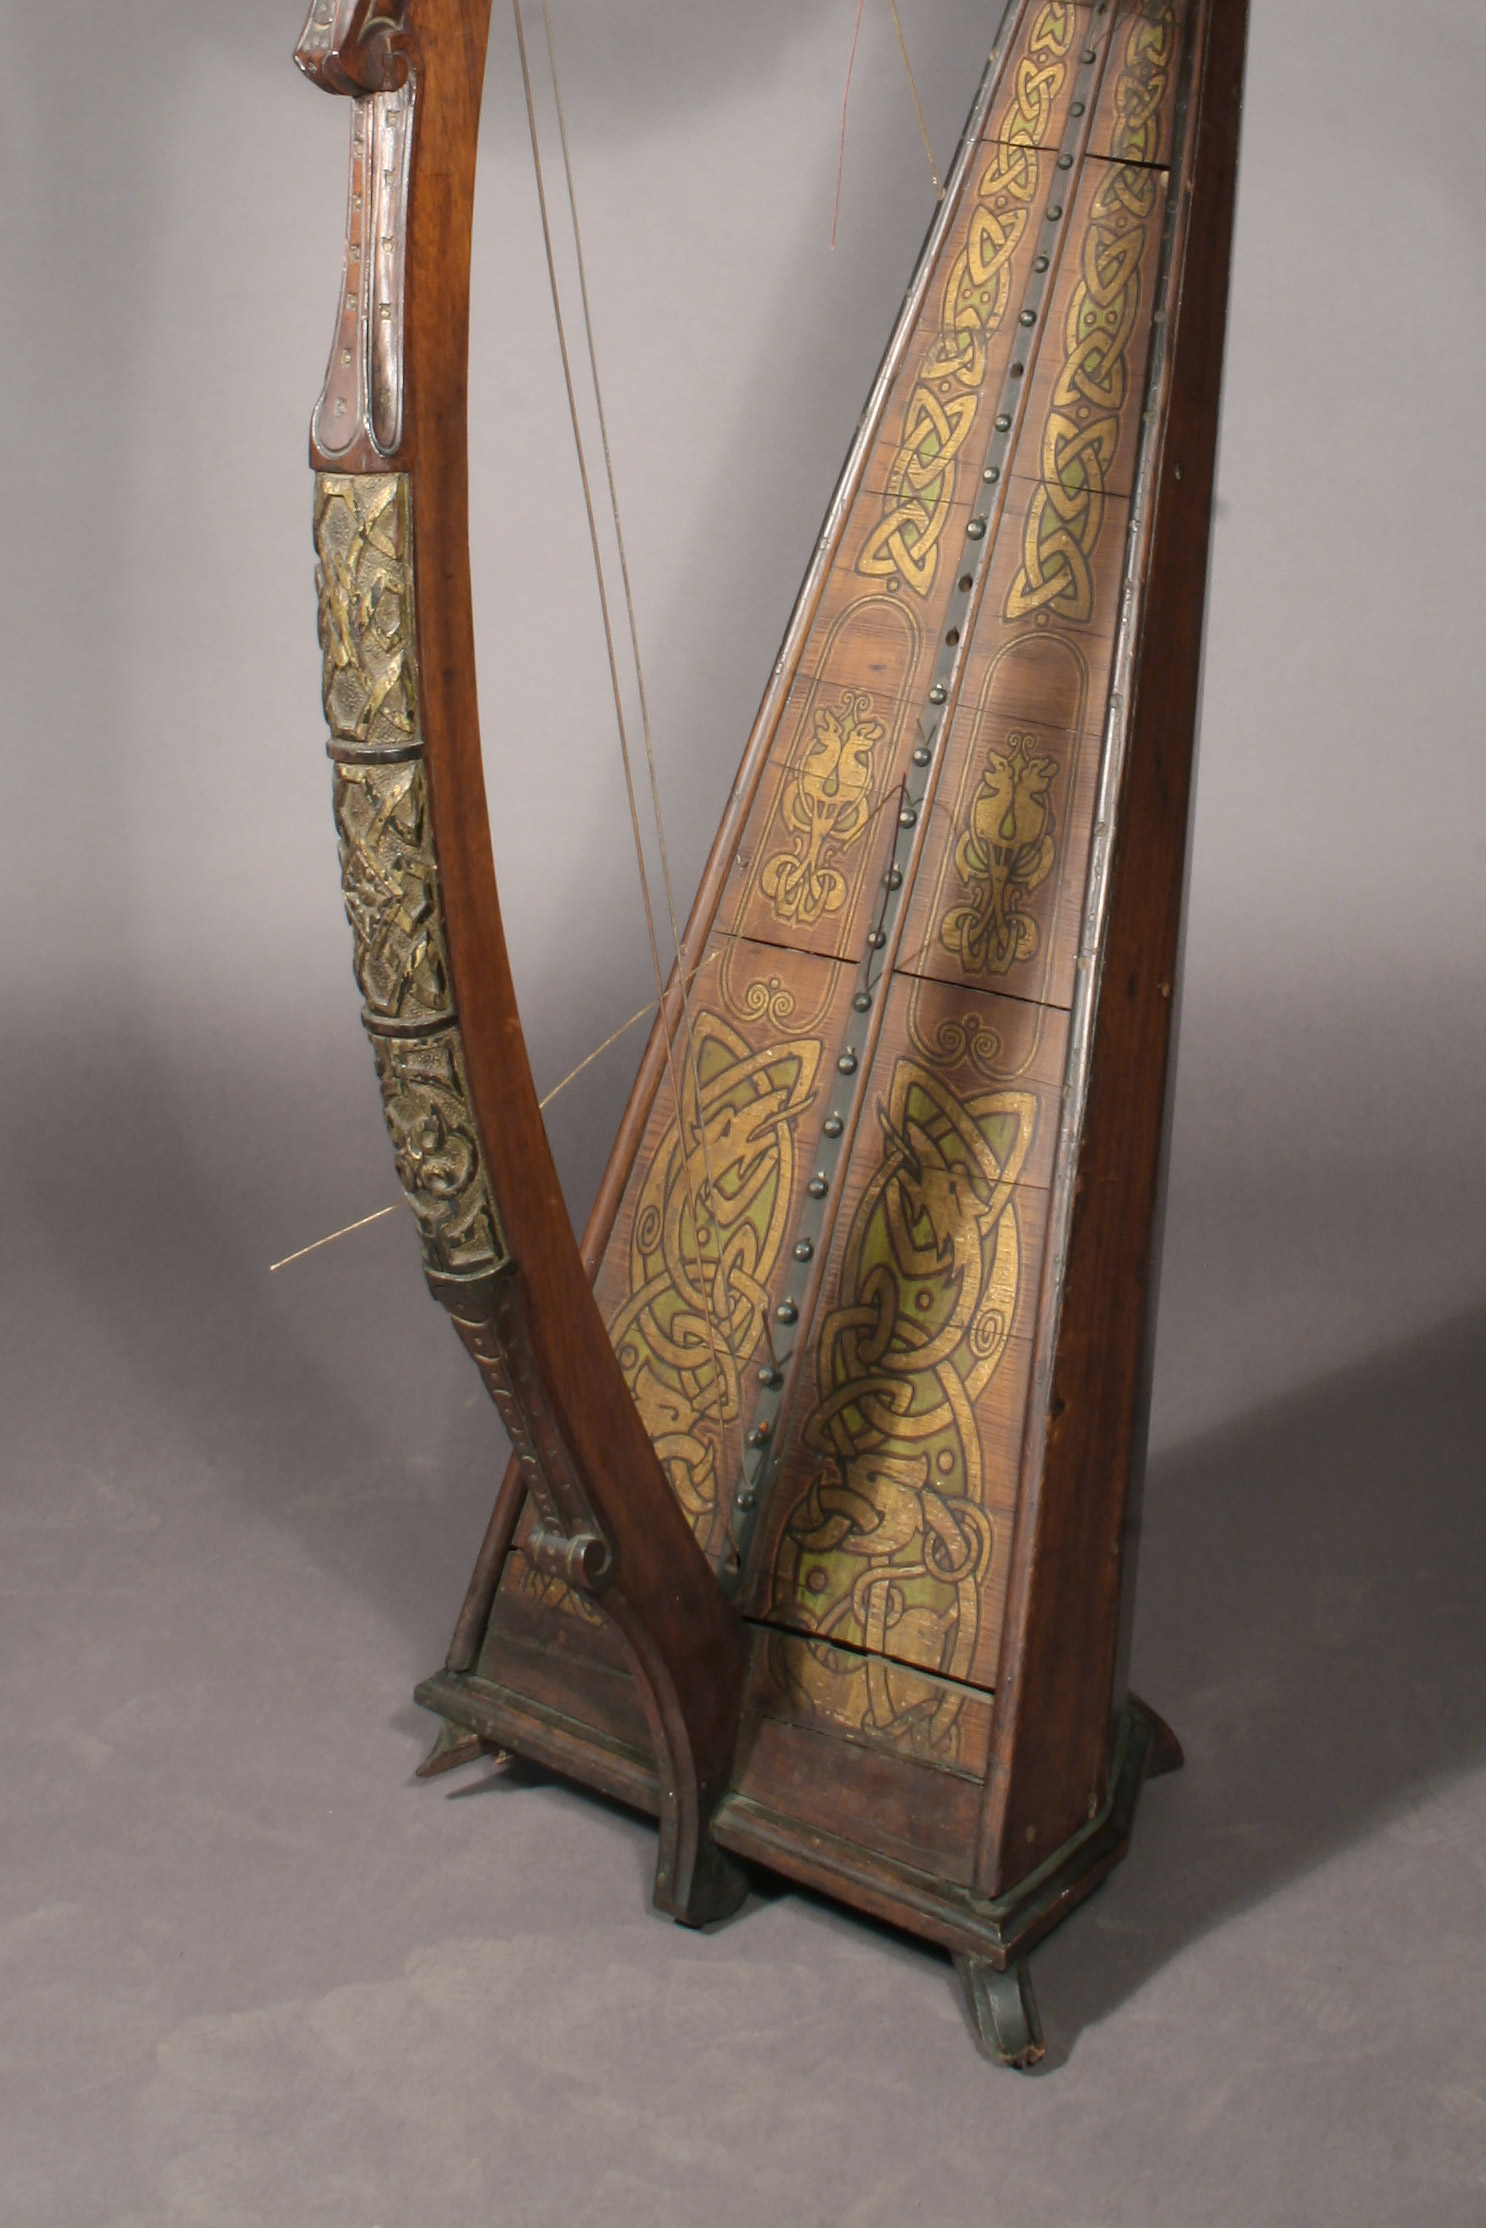 Before treatment: Detail of an Irish-inspired polychrome historic harp from the studio of American harp maker Melville Clark